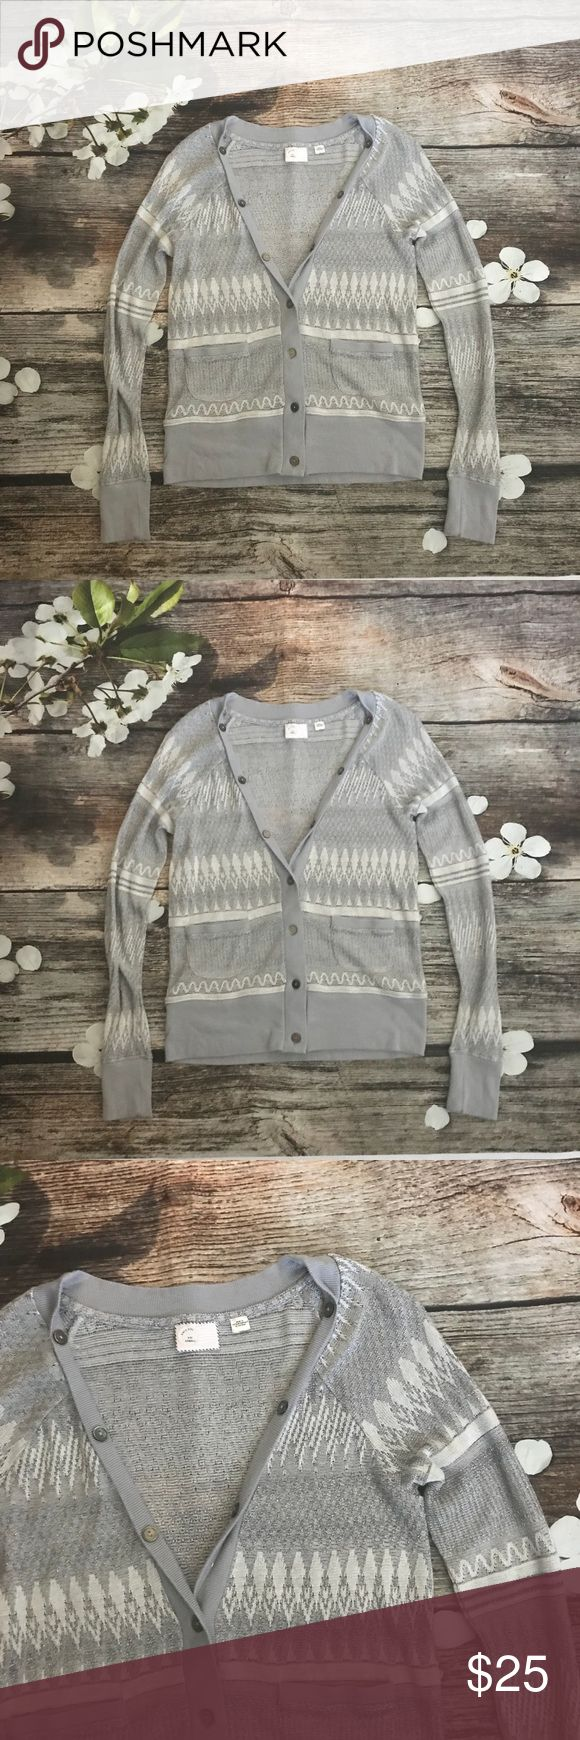 """Anthropologie 9-H15 stcl Silver Cardigan Size XS EUC Anthropologie 9-H15 stcl Silver Cardigan.  Size XS Measurements: 30"""" Chest, 21"""" Length Materials: 62% Acrylic, 16% Nylon, 12% Wool, 10% Metallic Anthropologie Sweaters Cardigans"""